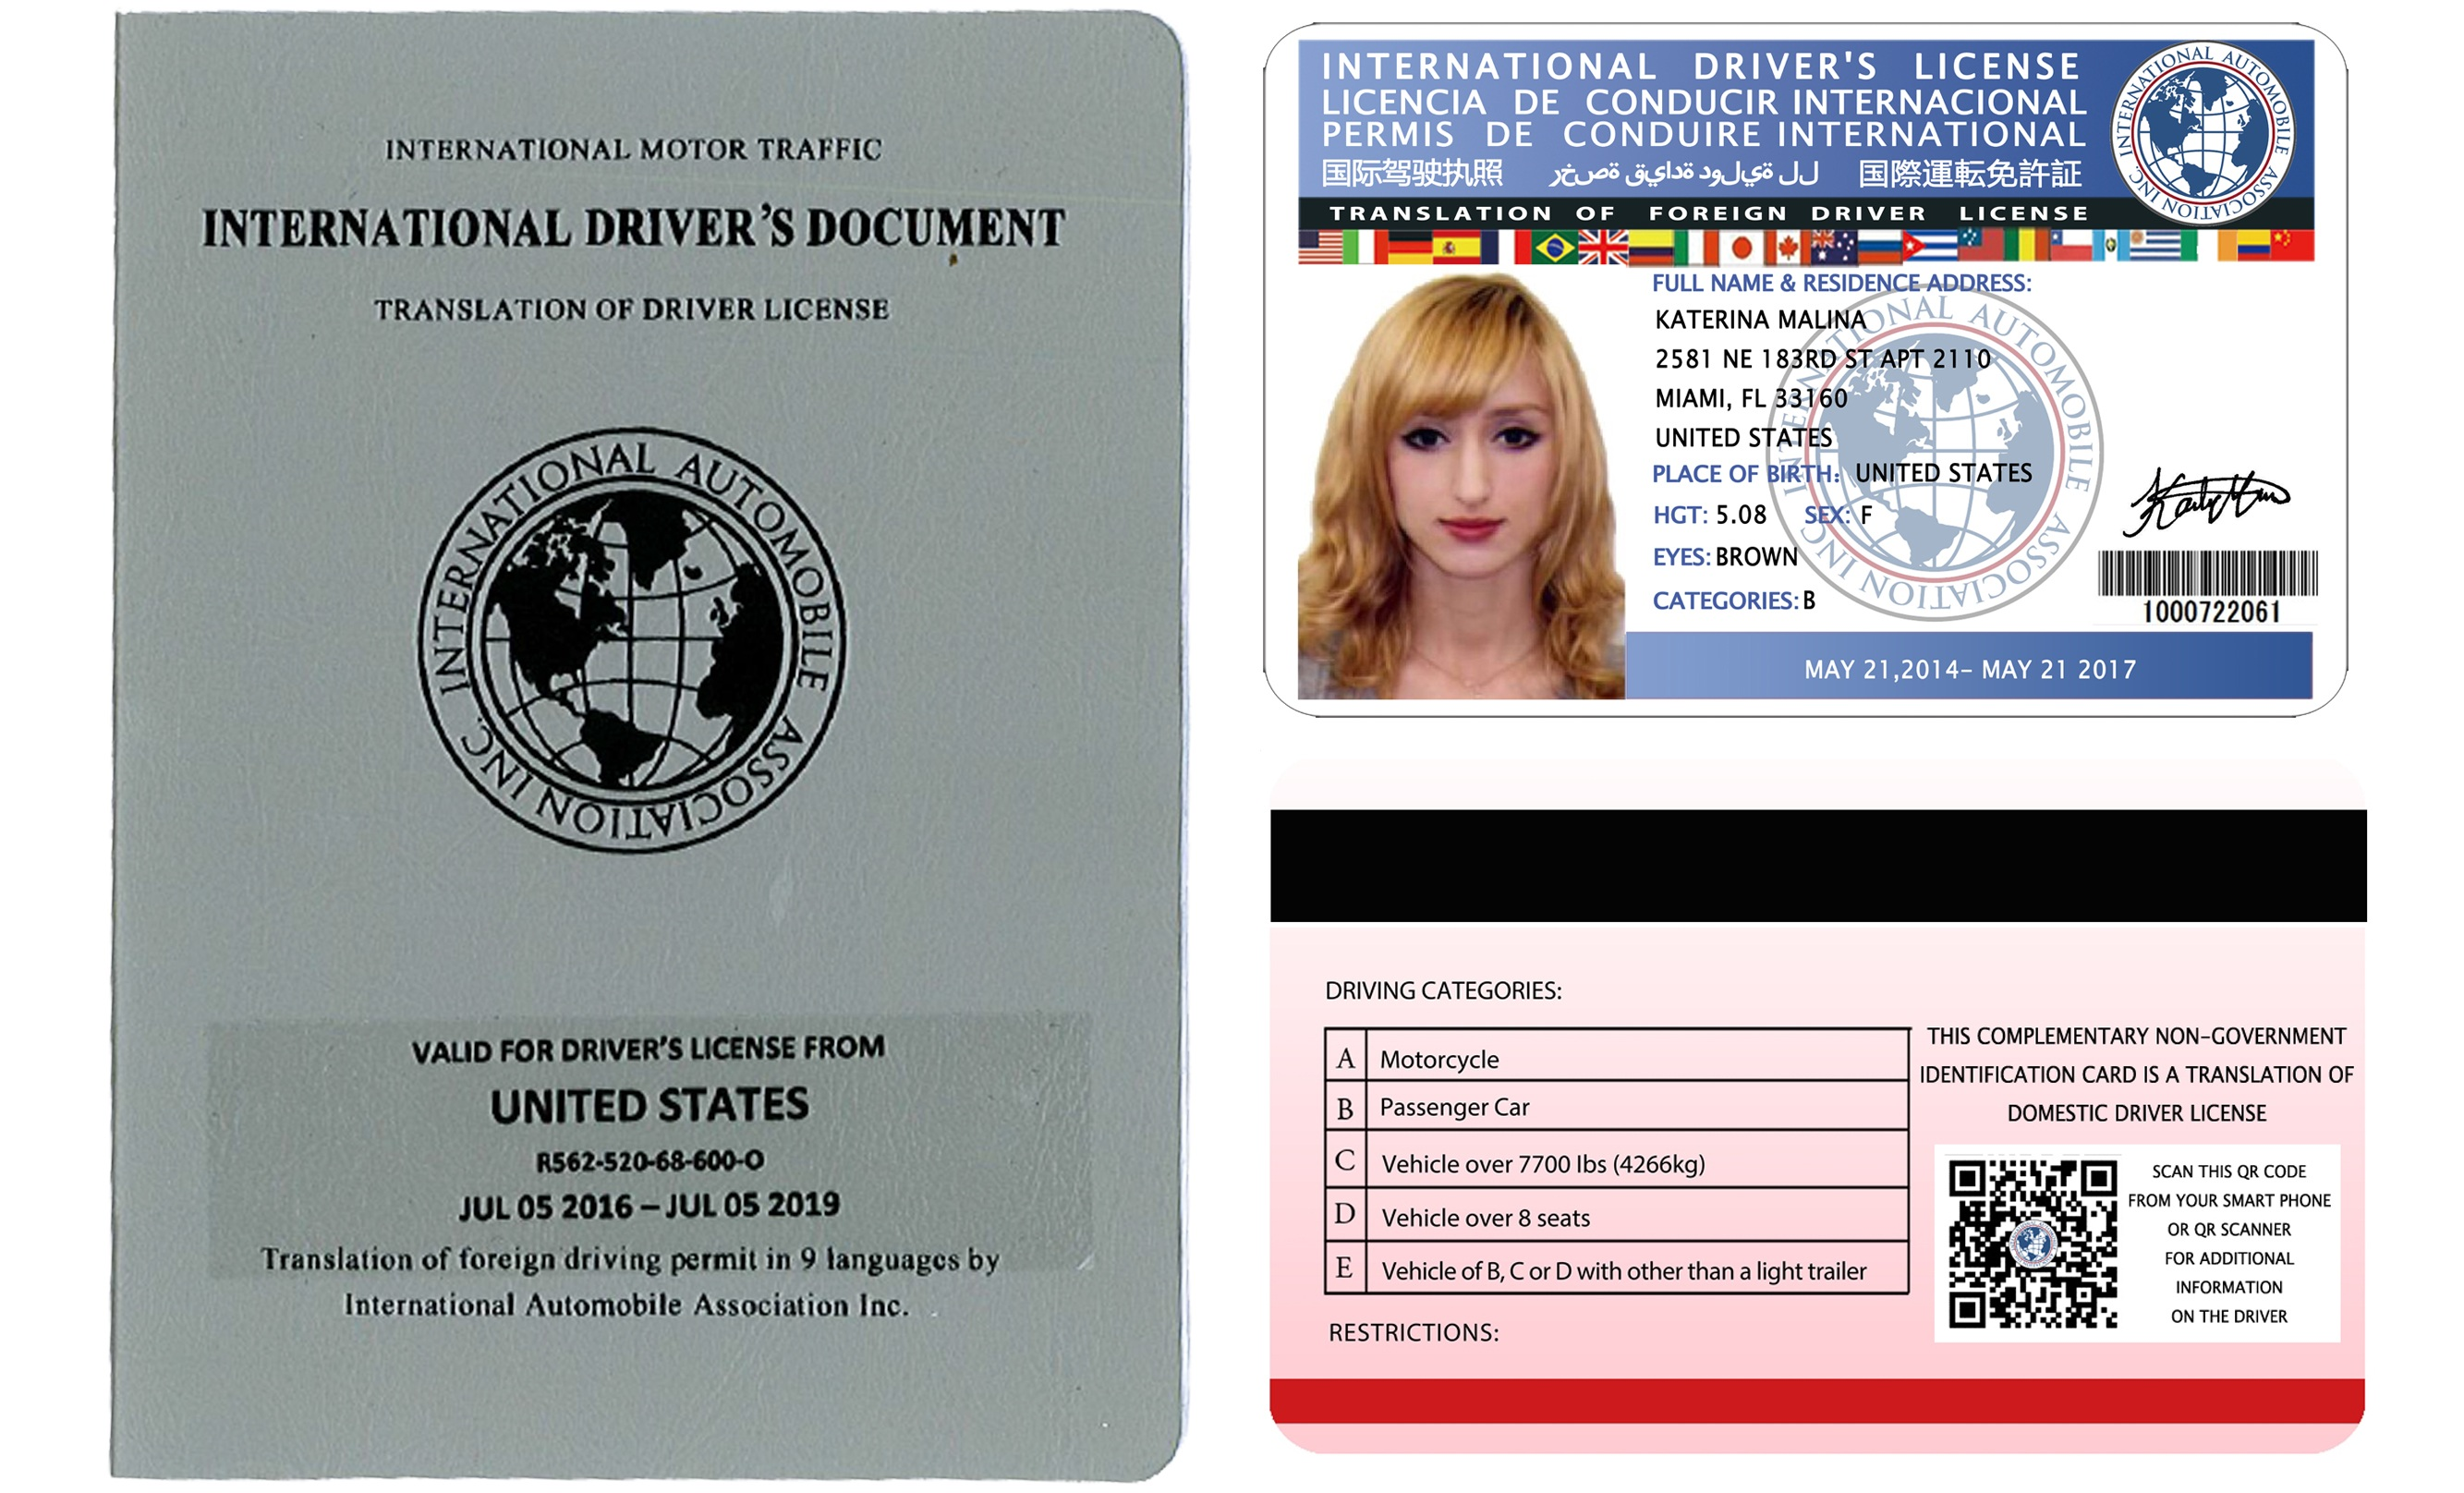 Samples Of International Driver's Document. Invision Human Services Eway Merchant Account. National Association Of Jewelry Appraisers. Professional Project Manager. Drug And Alcohol Counseling Certification Online. Energy Efficient Kitchen Vonage 3 Way Calling. Appraisal School Online Juice It Up Nutrition. Time Clock Software With Mobile App. Lawyer Website Development Laser Genesis Acne